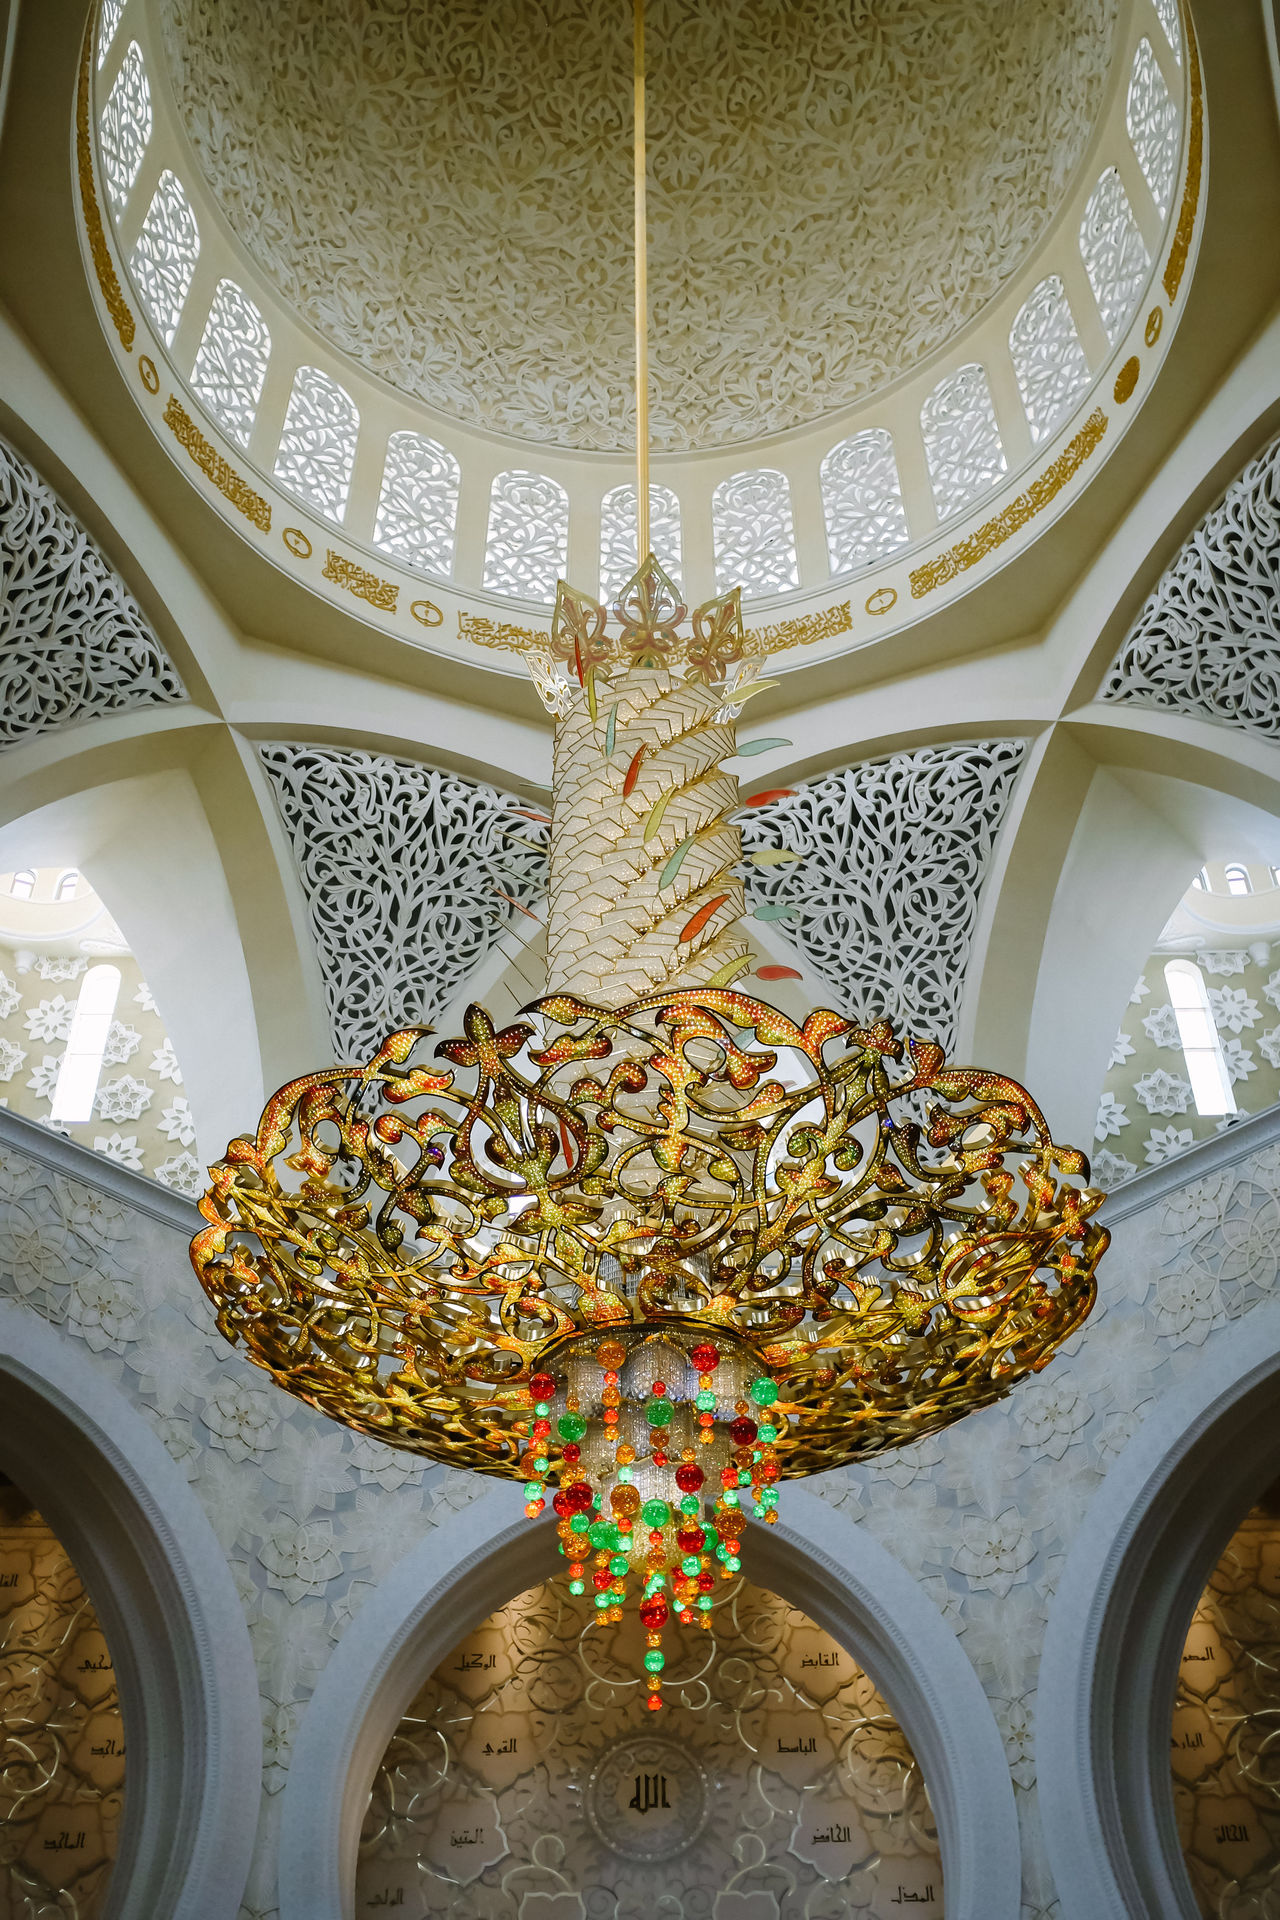 Abu Dhabi Abudhabi Allah Chandelier Dubai Grand Mosque Islam Mosque Pool Praise Pray Prayer Quran UAE Worship